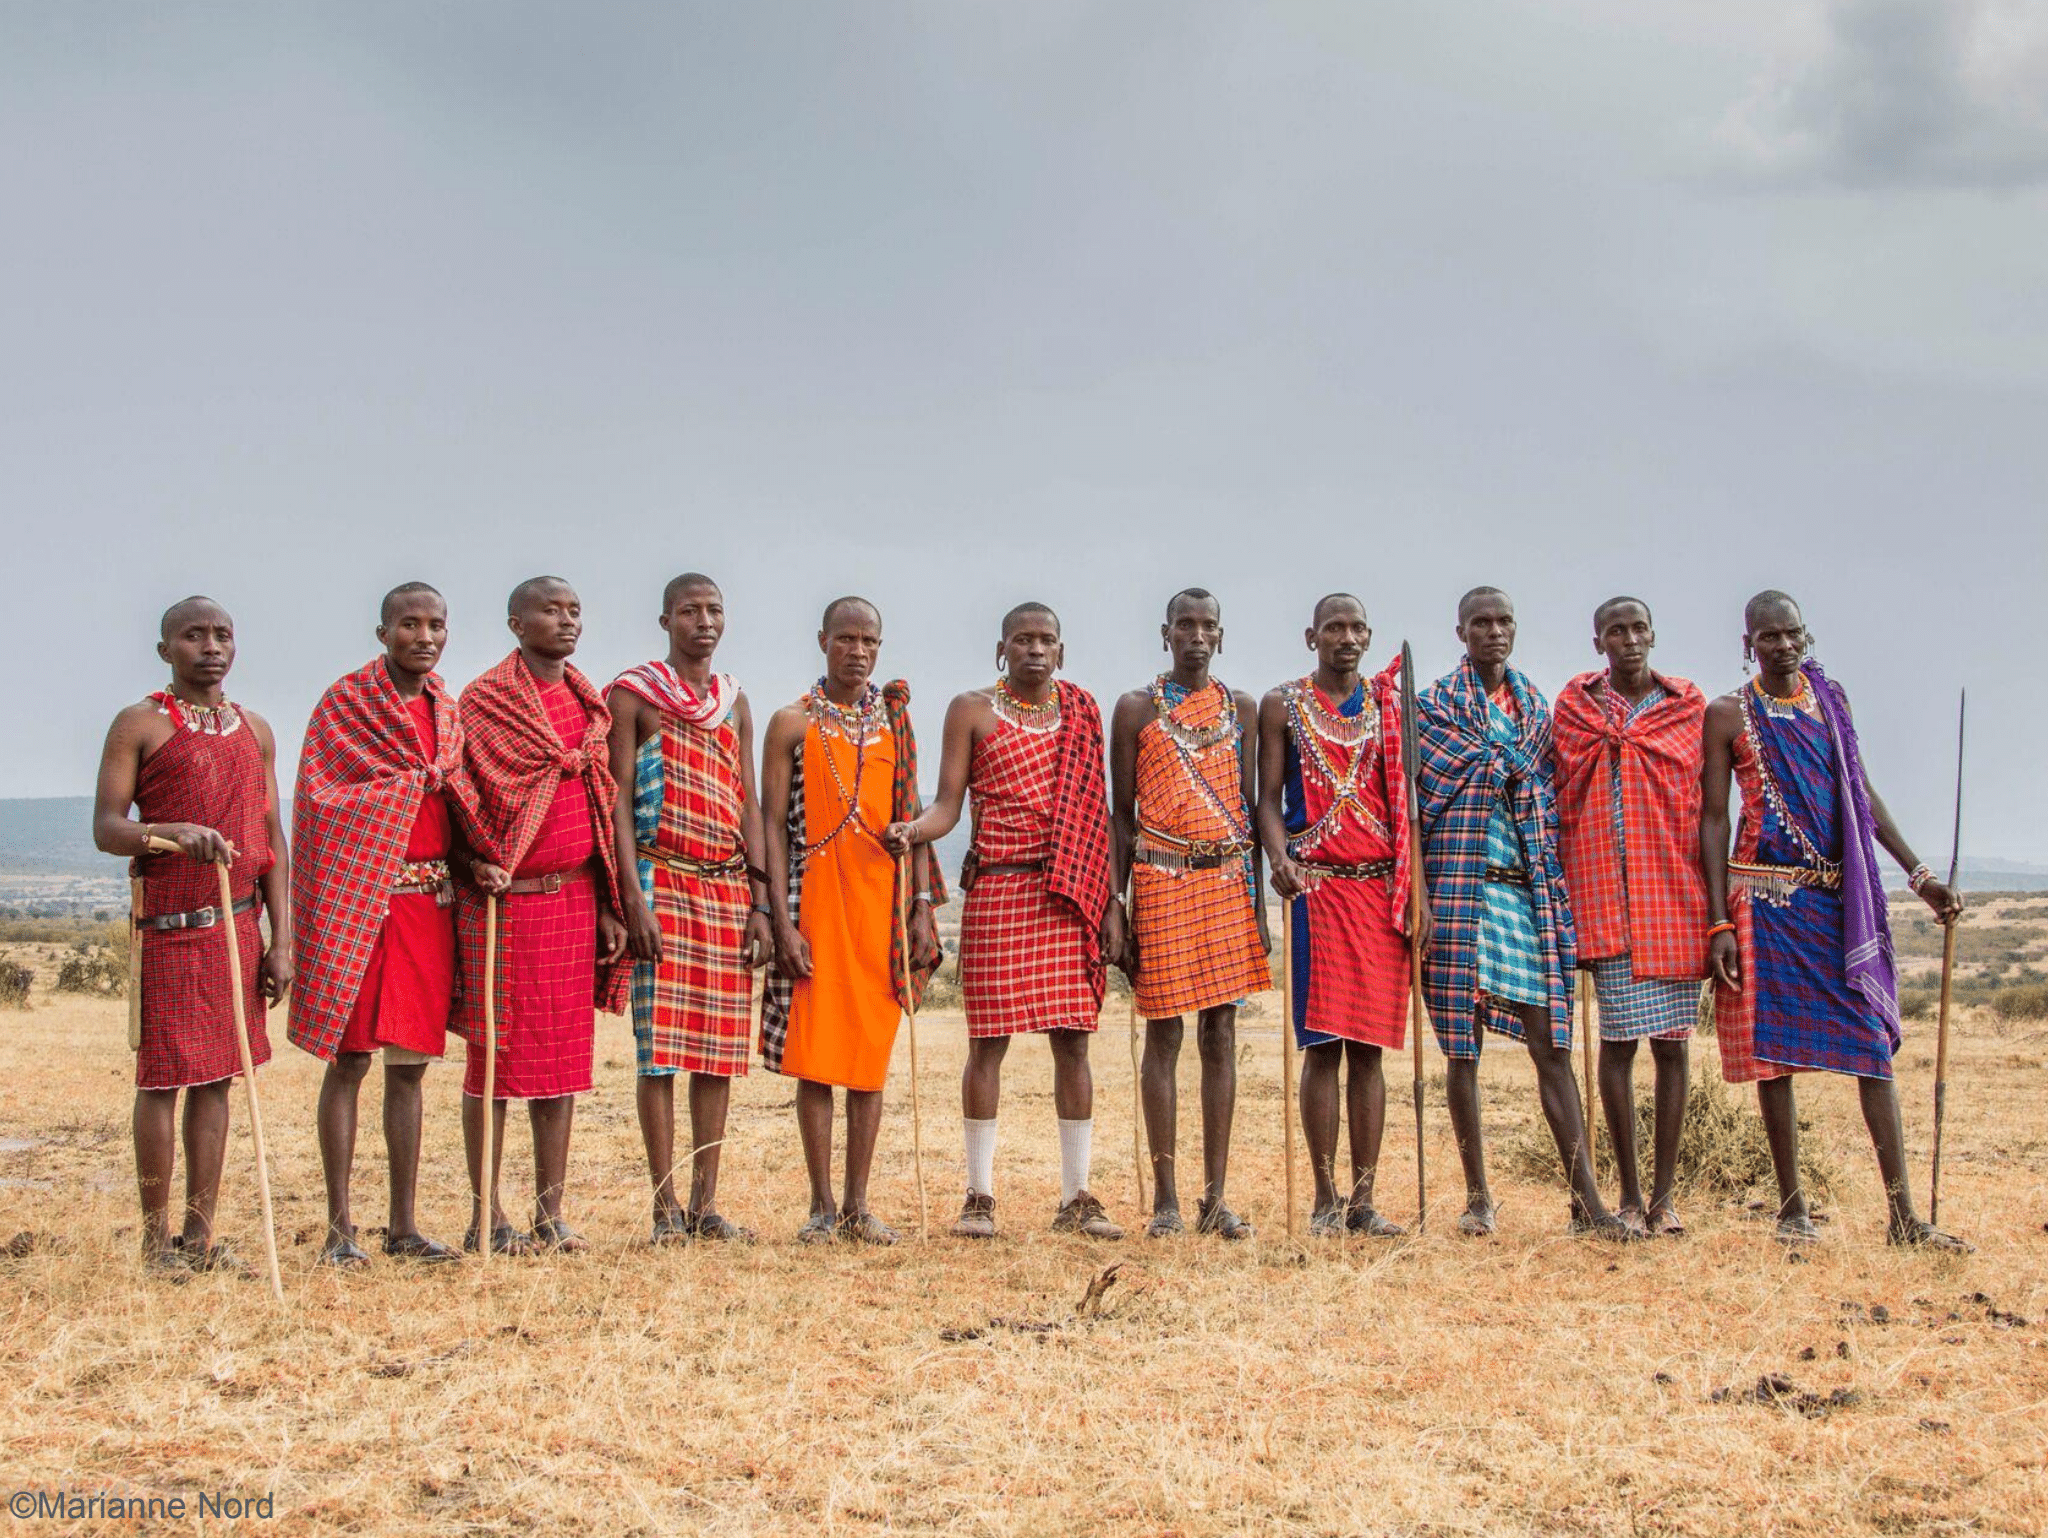 """"""" Nashulai is the first ever community-owned and directed wildlife conservancy. It is a unique achievement that promises to inspire a positive change in the entire East Africa region.""""    ~ John Mbaria, Conservation Journalist"""